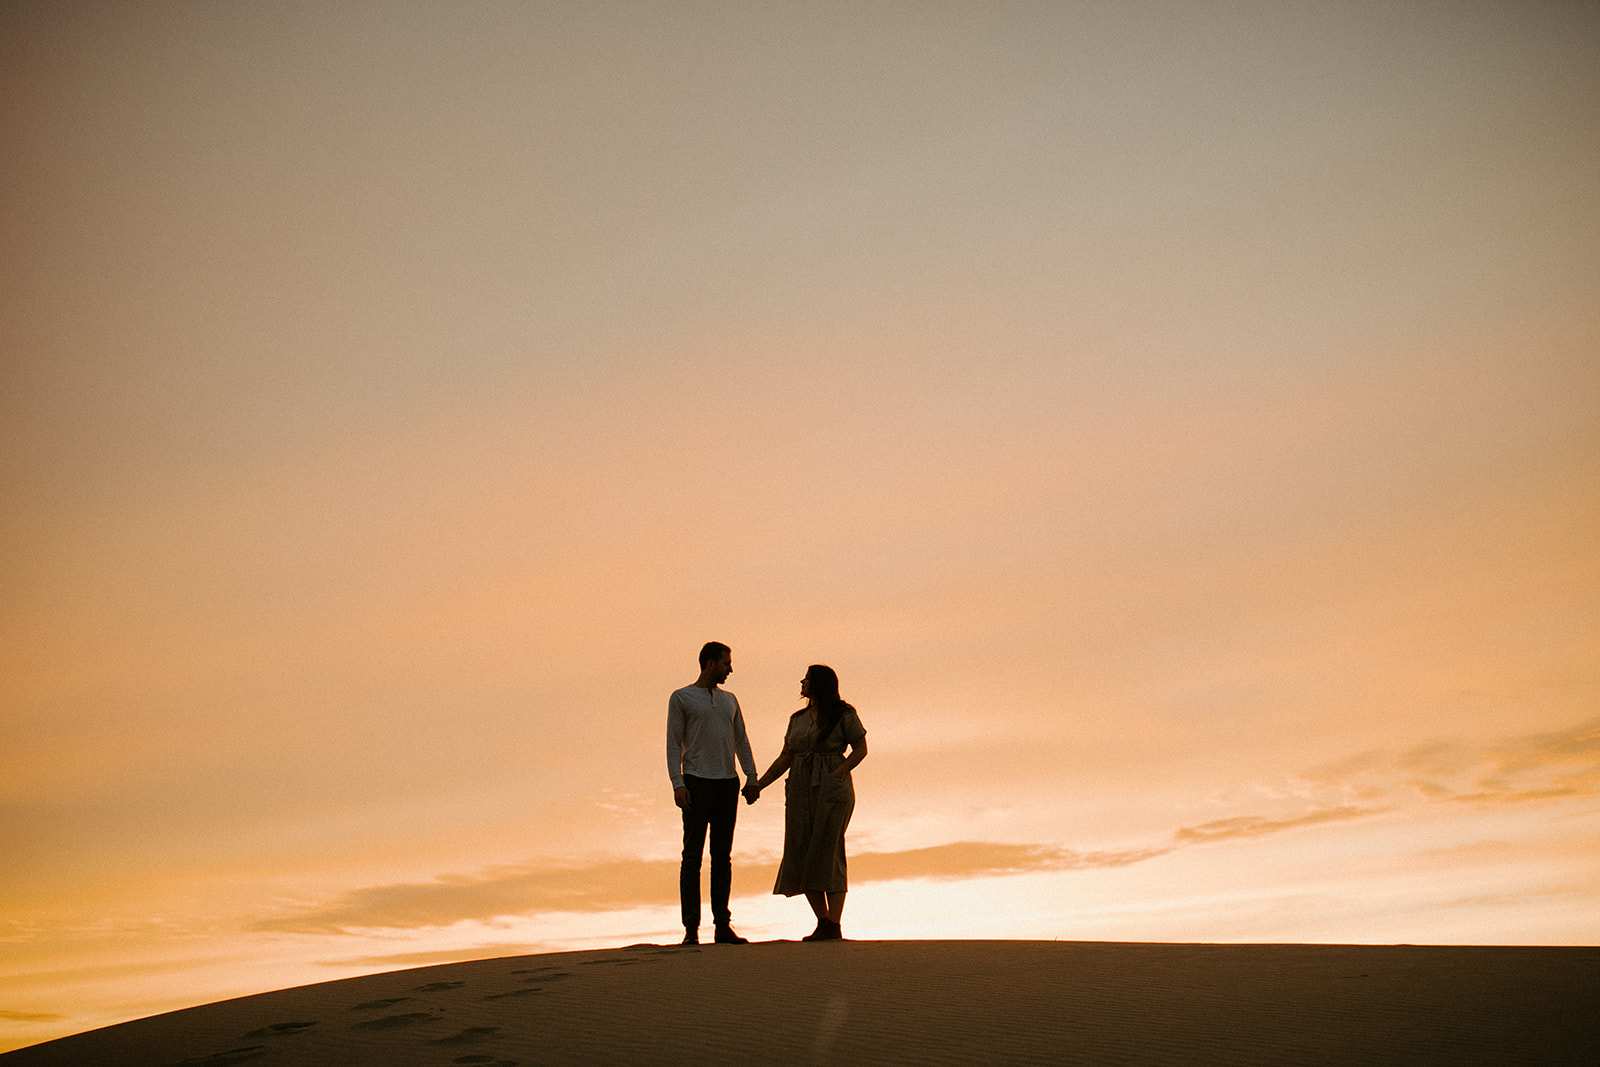 Emily_and_Jeff_Oregon_Coast_Engagement_Dawn_Charles_Photographer-345.jpg